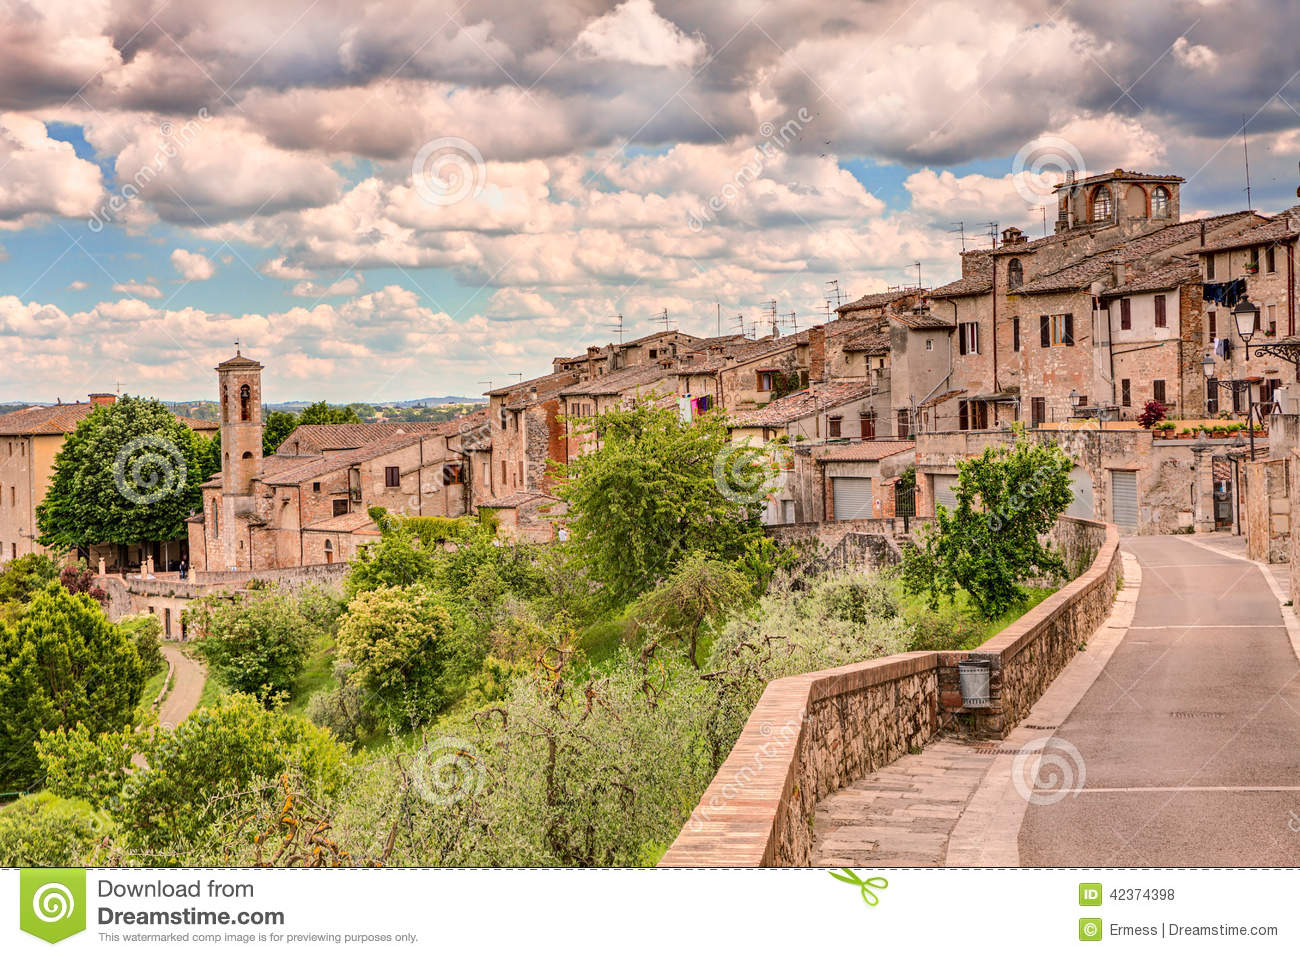 Colle Val D'Elsa Italy  City new picture : Landscape Of Colle Di Val D'Elsa, Tuscany, Italy Stock Photo Image ...